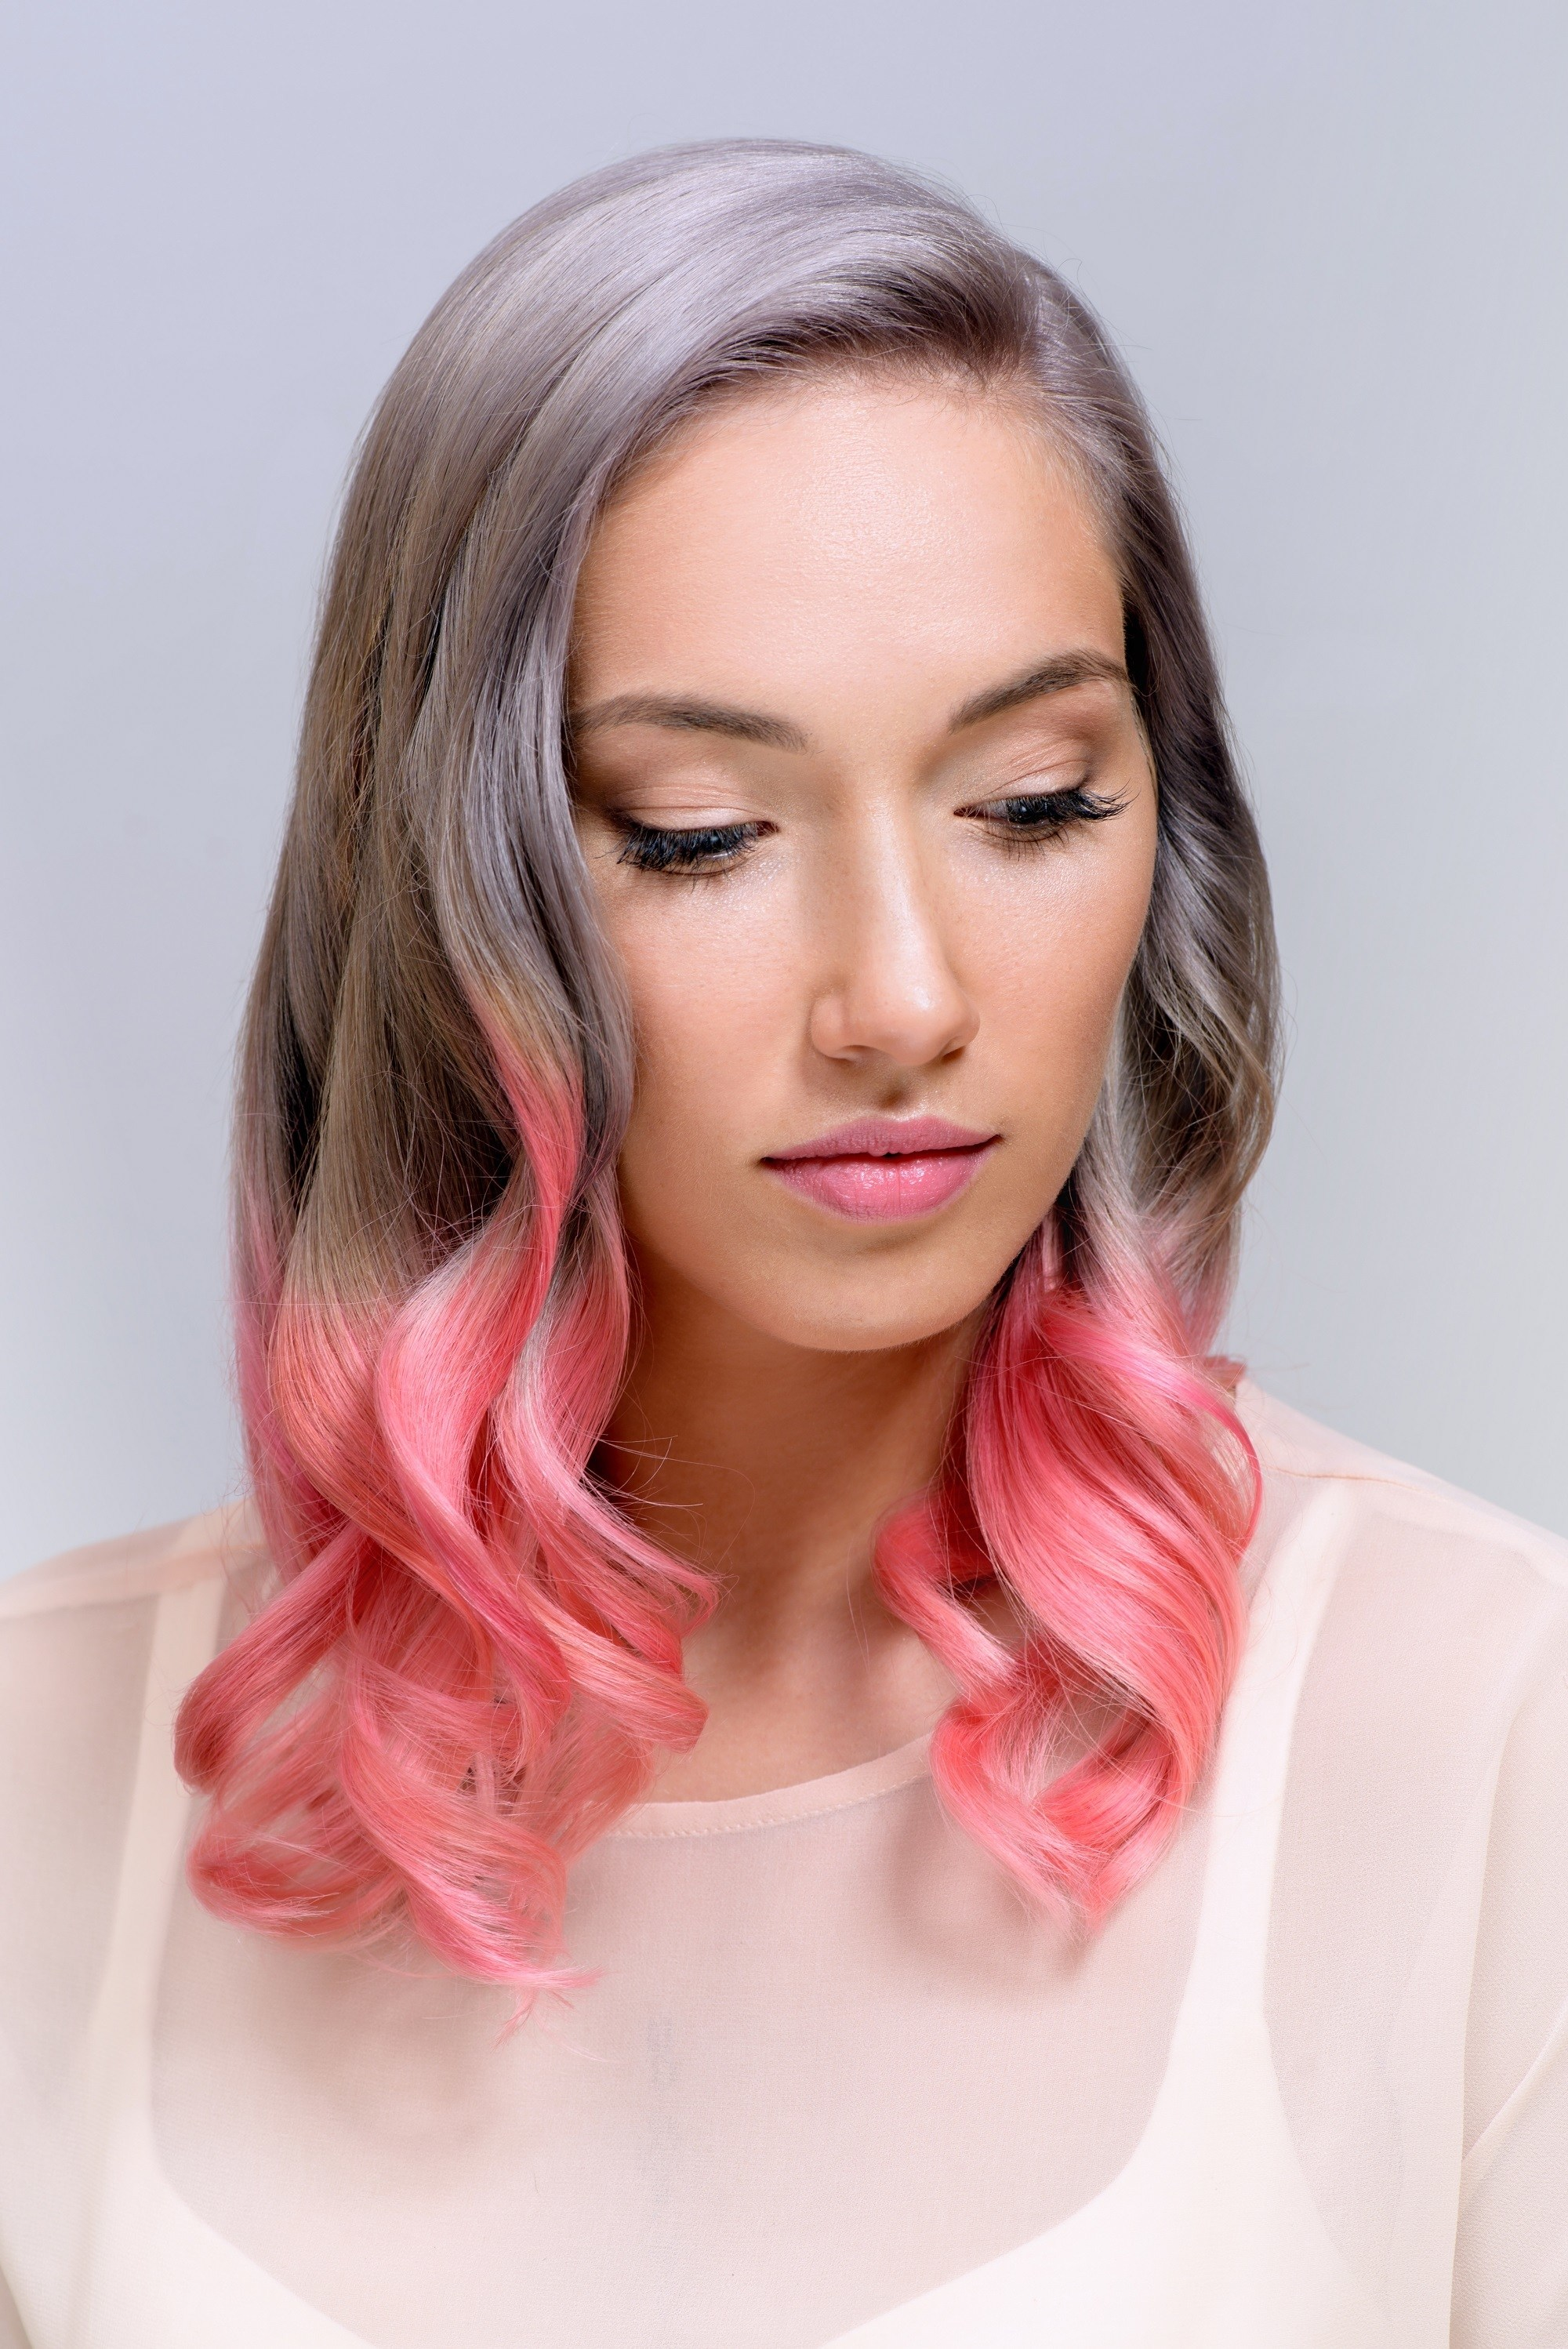 Woman with shoulder length wavy hair with pink hair streaks wearing white blouse closeup shot against gray background